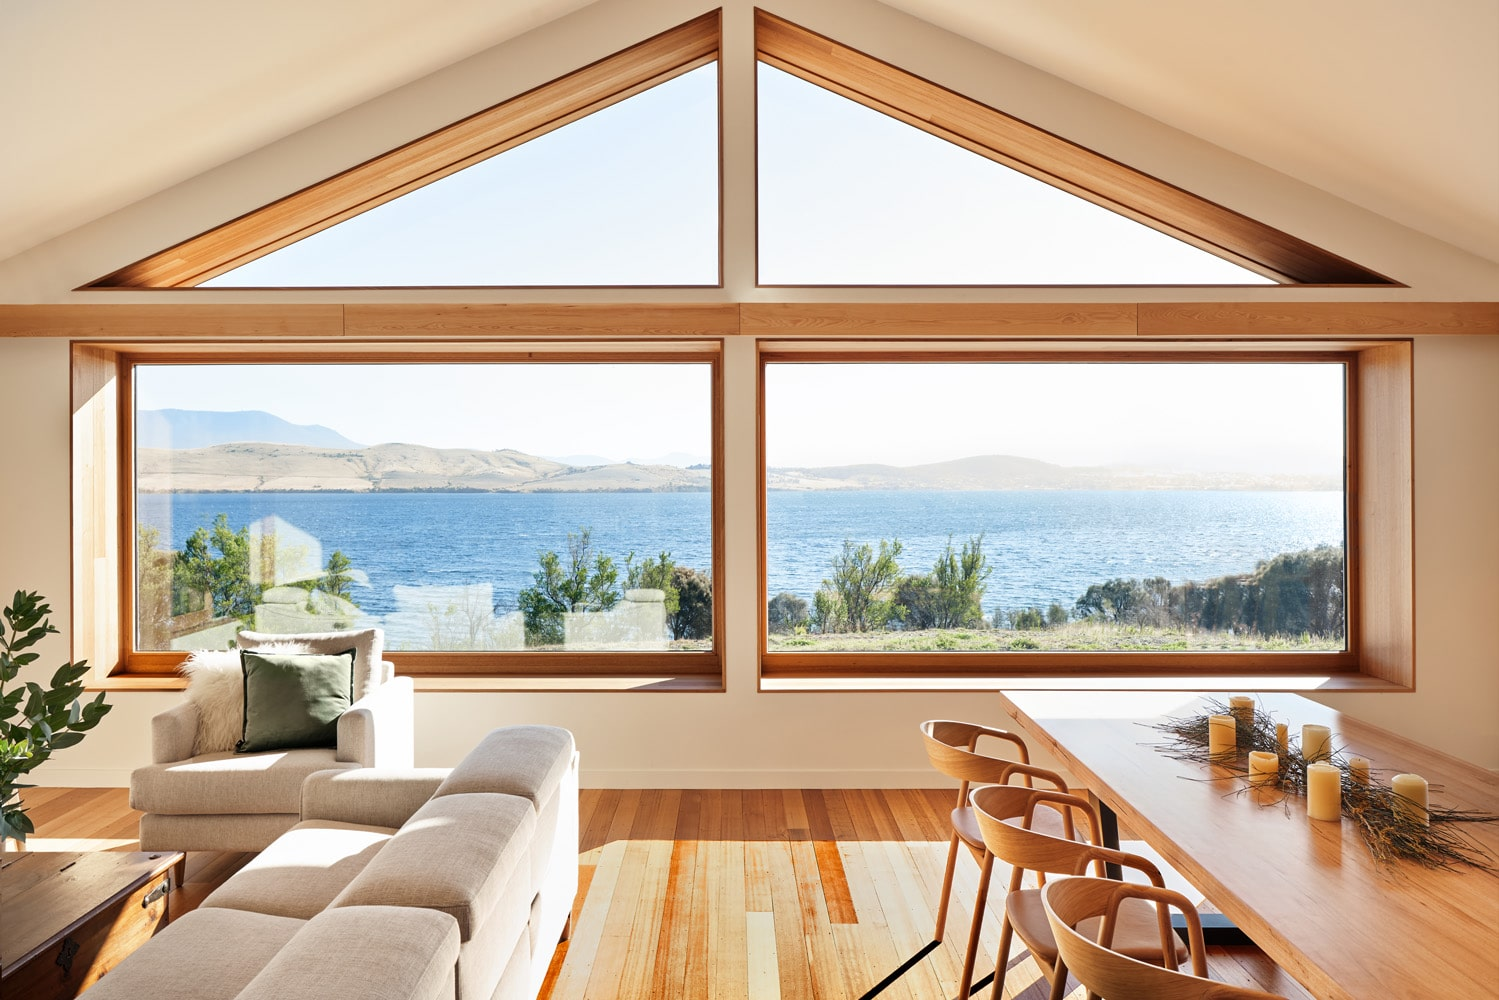 Sustainable home with timber floors